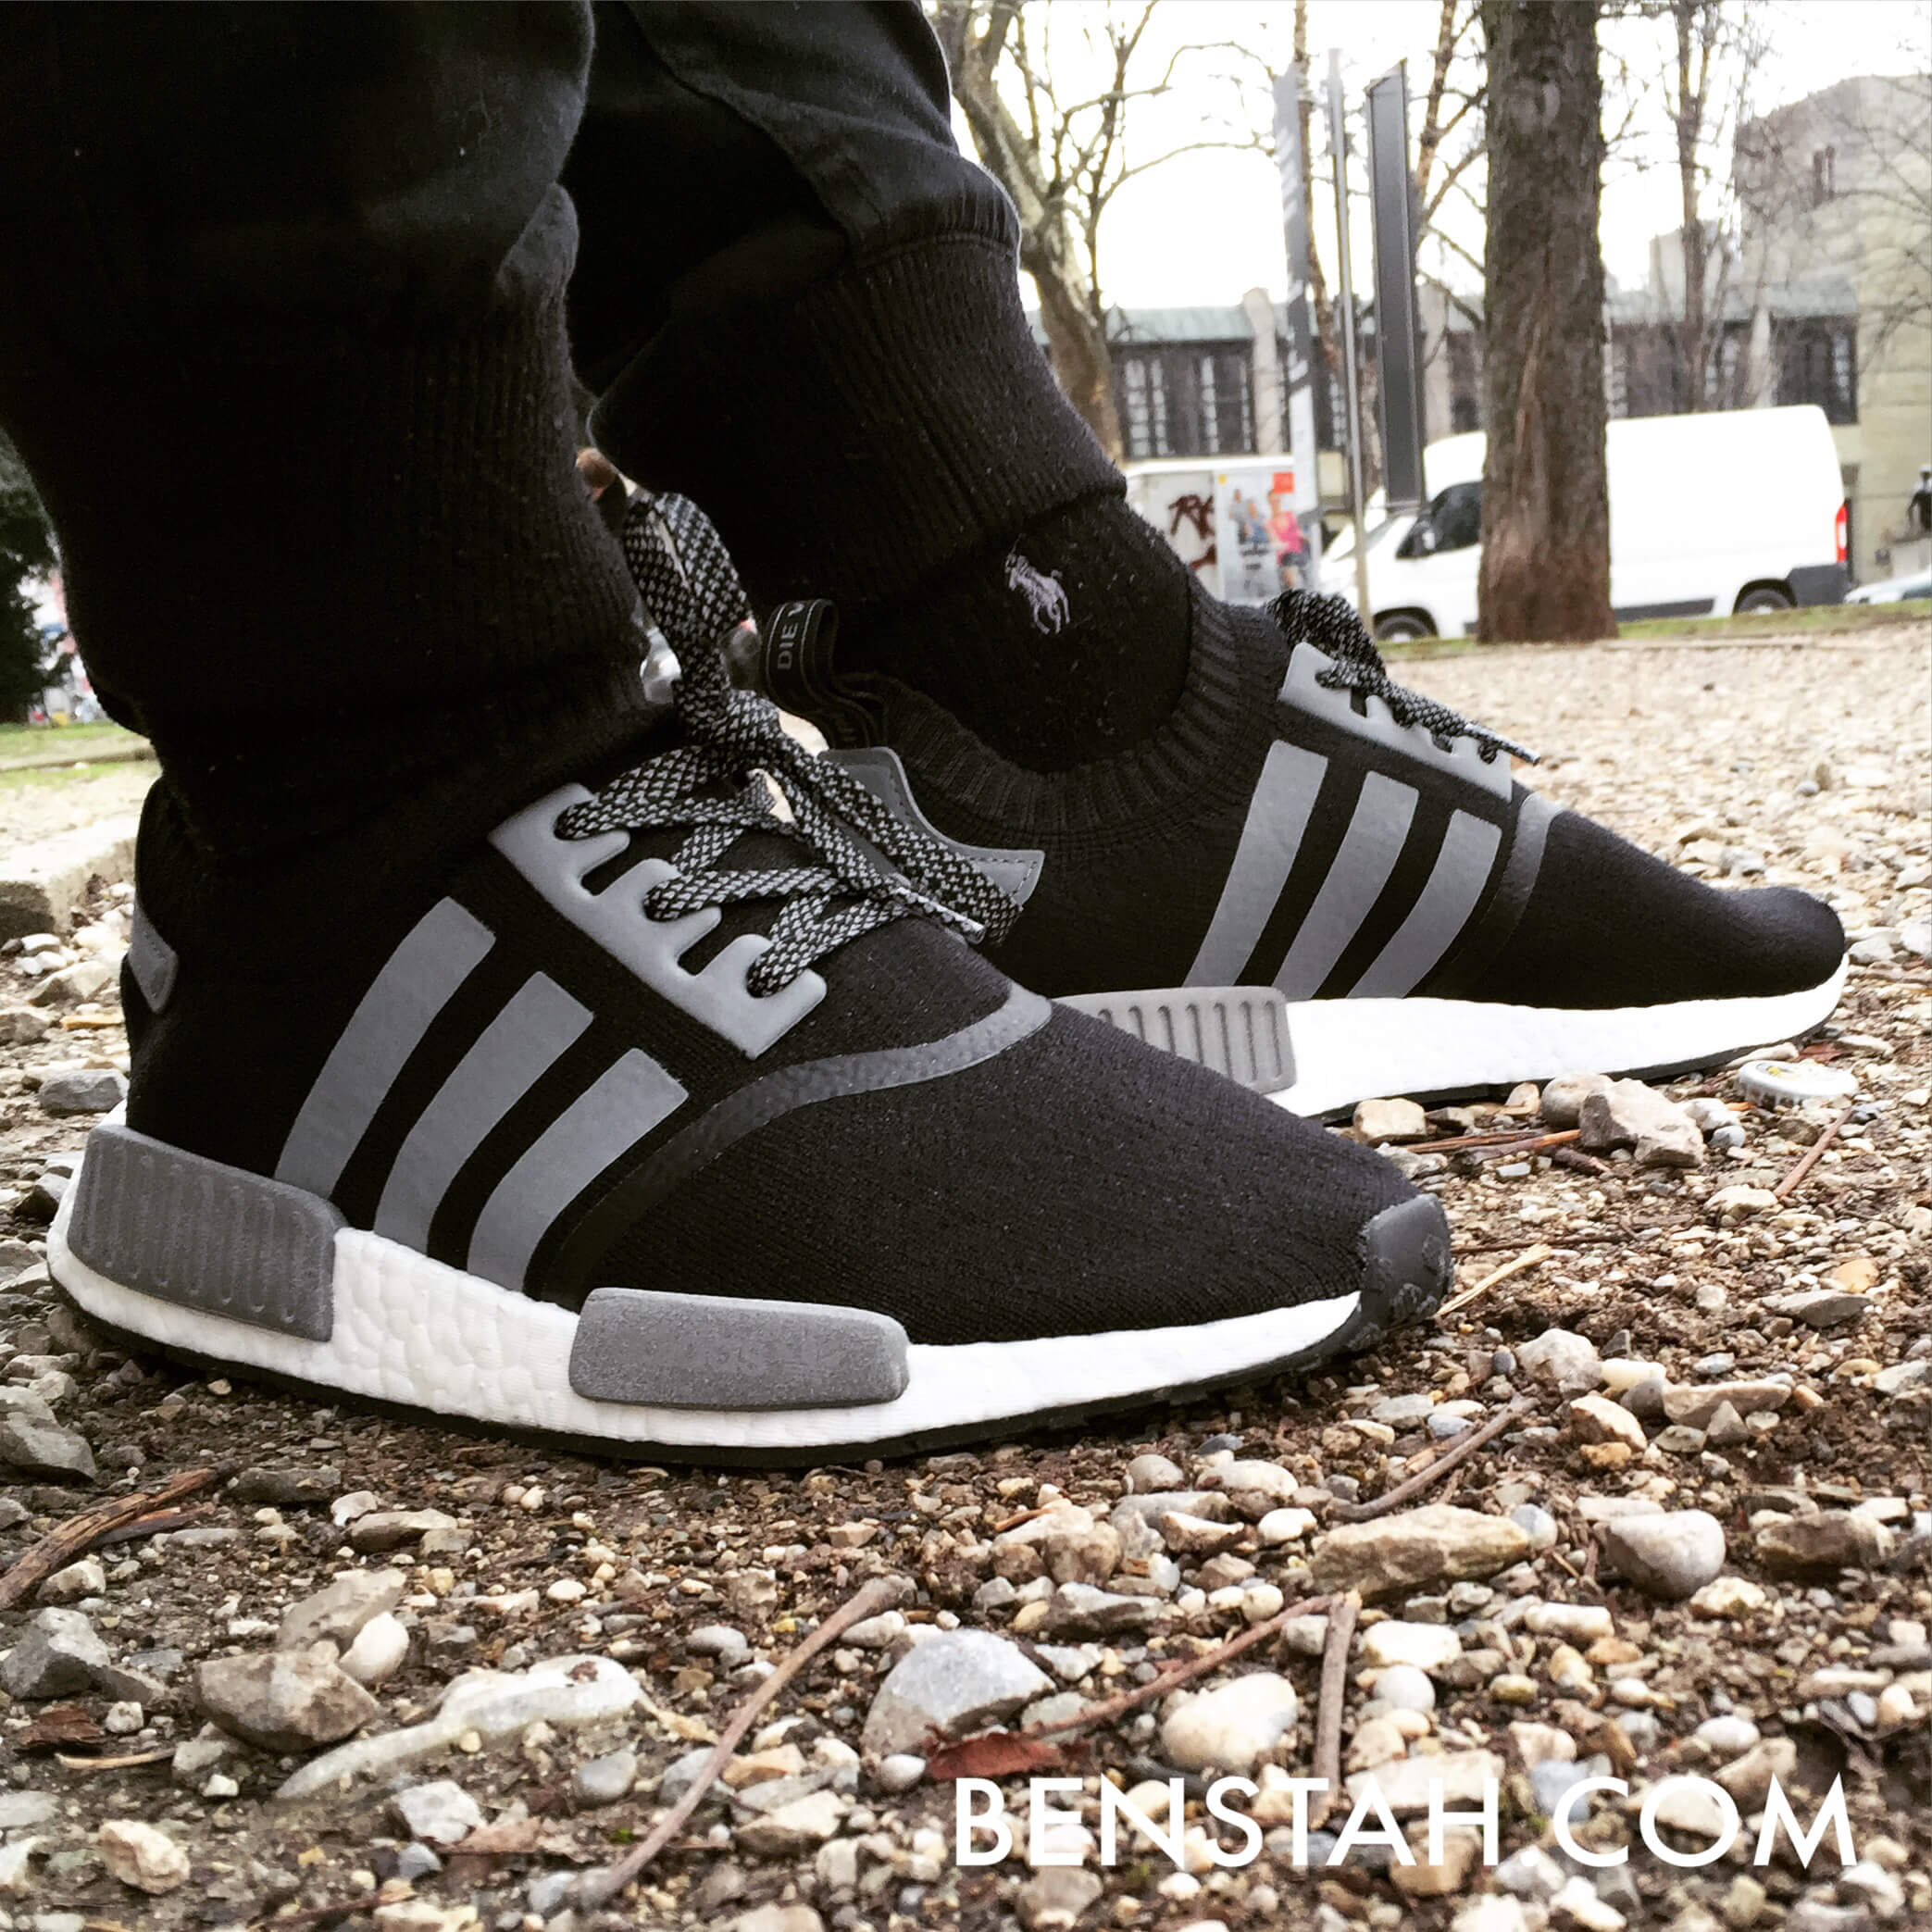 Adidas-NMD-Key-City-Activation-Side-View-Benstah